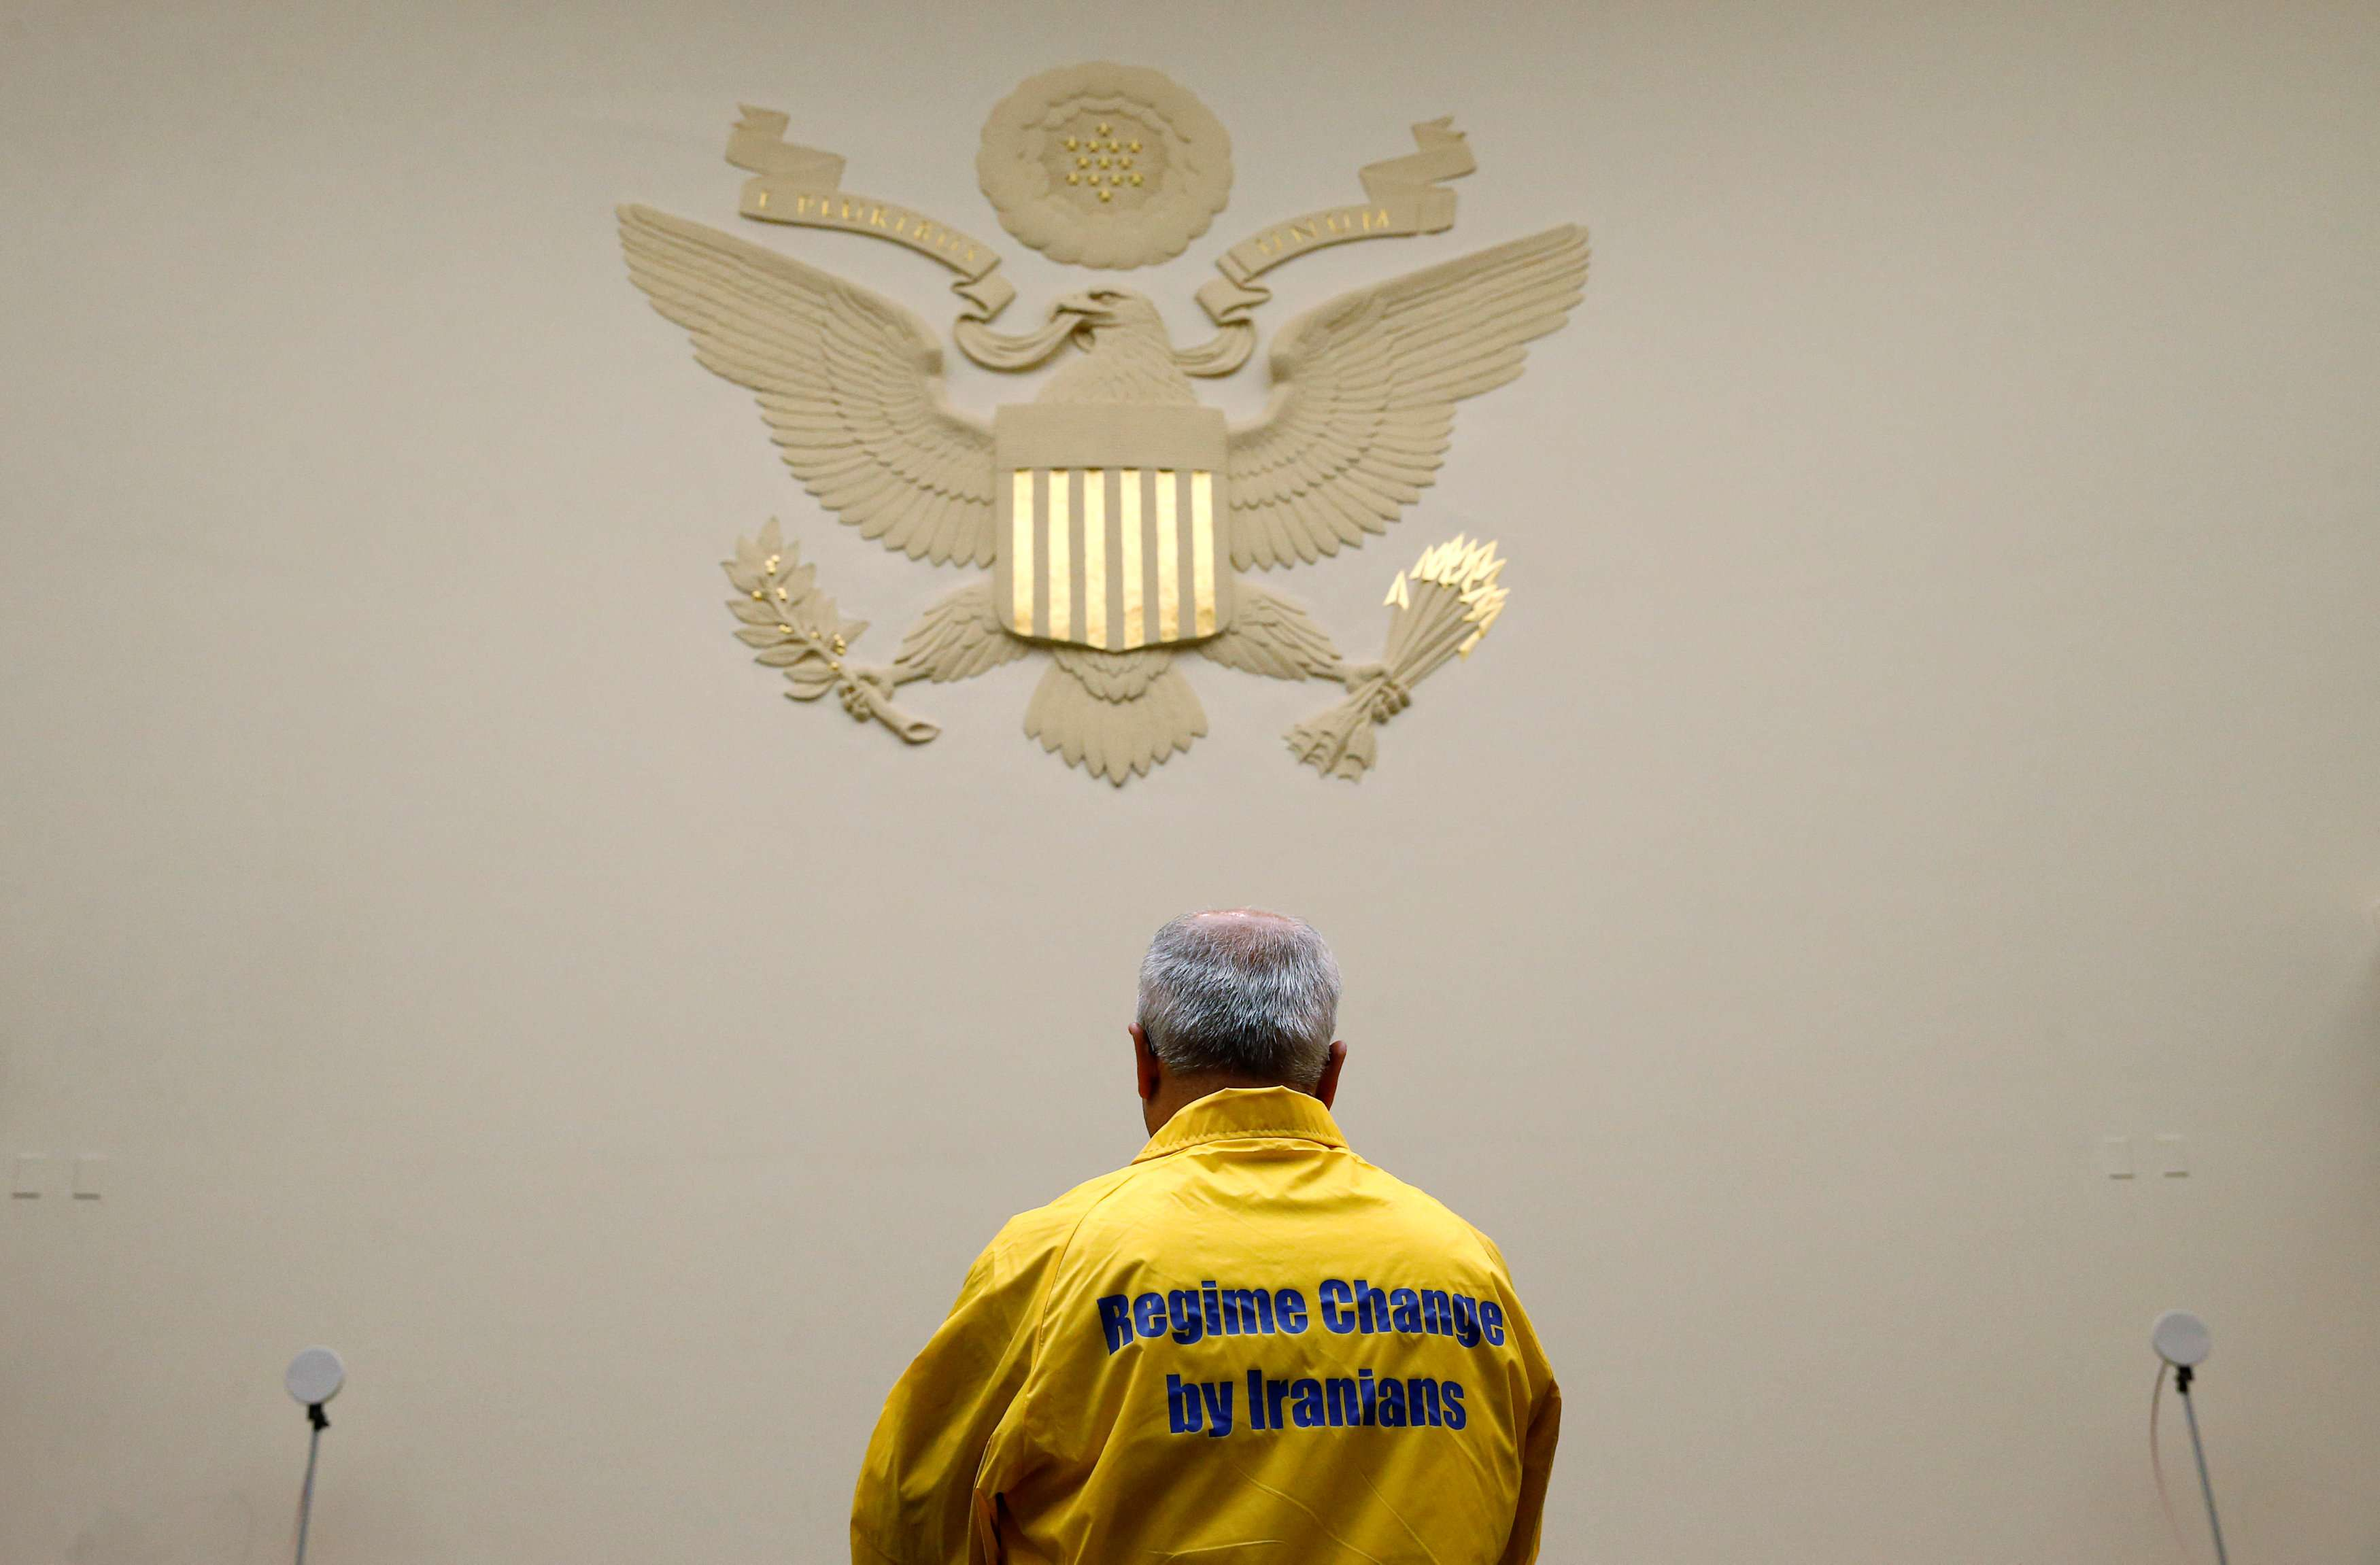 A demonstrator awaits the arrival of US Secretary of State Mike Pompeo at a hearing of the US House Foreign Affairs Committee on Capitol Hill in Washington,  on May 23. (Reuters)